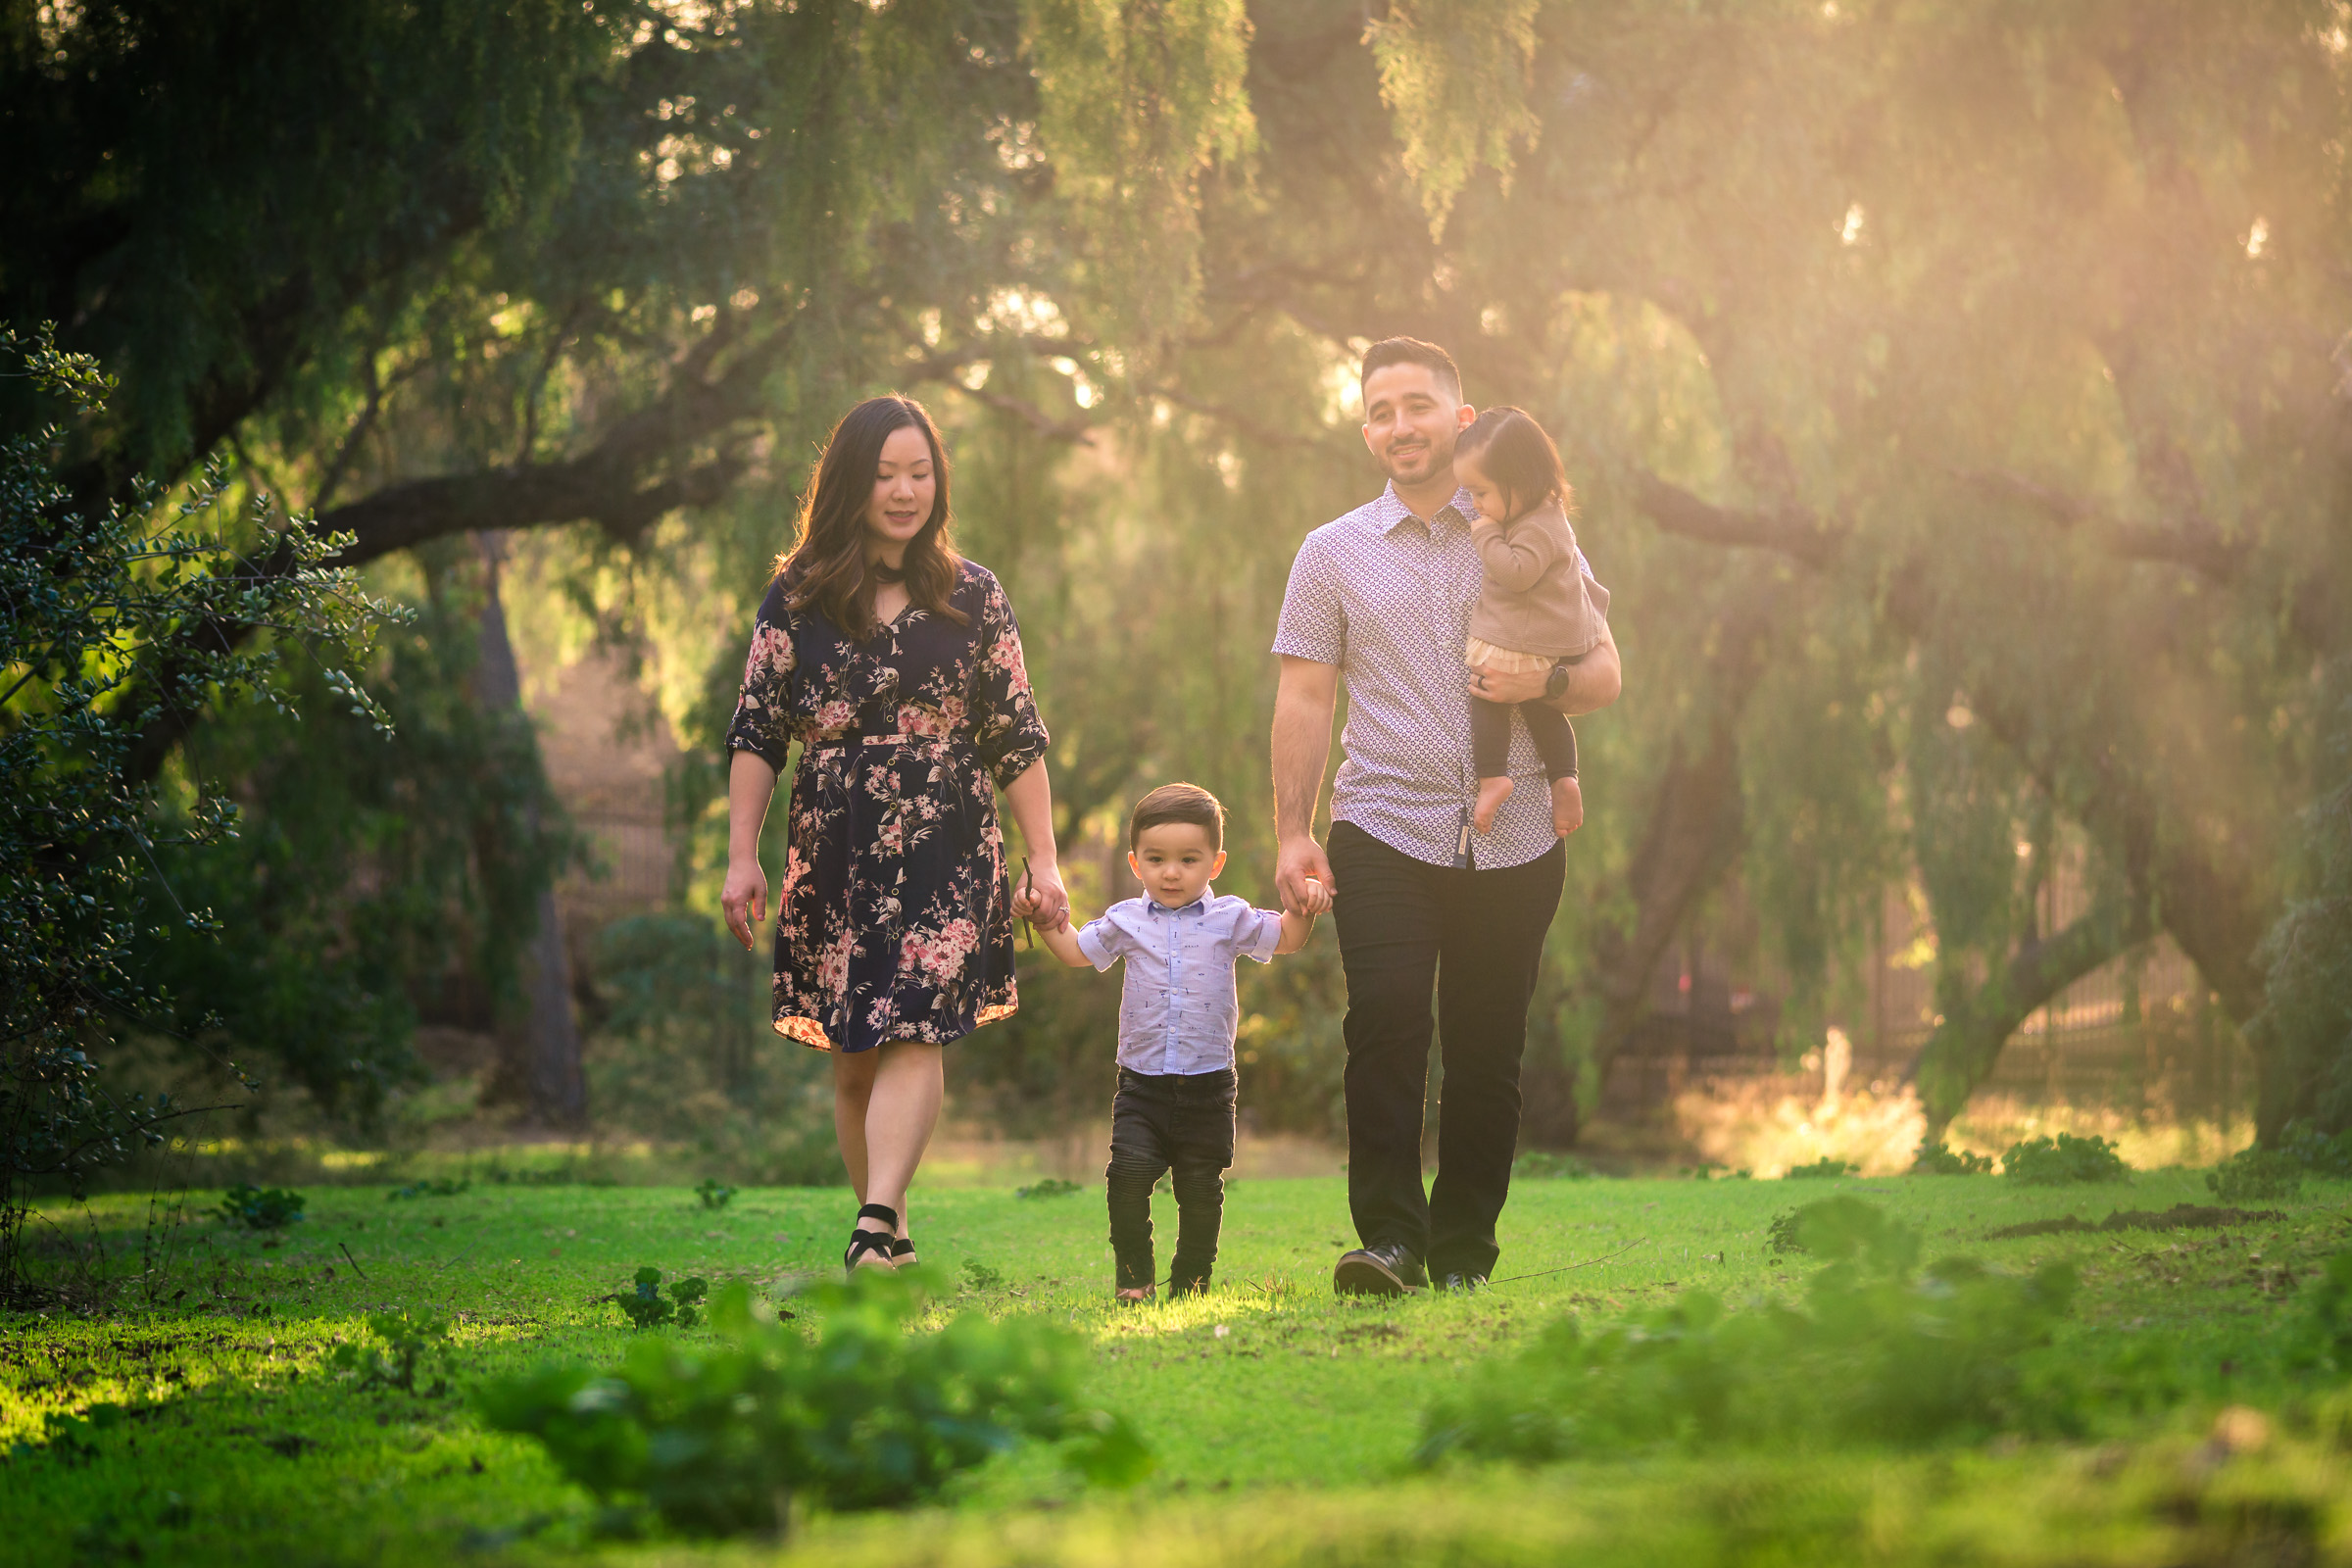 Candid photo of family walking during a Family portrait photo shoot in Fullerton on the Juanita Cooke Trail with vibrant green trees and grass and the golden hour sun